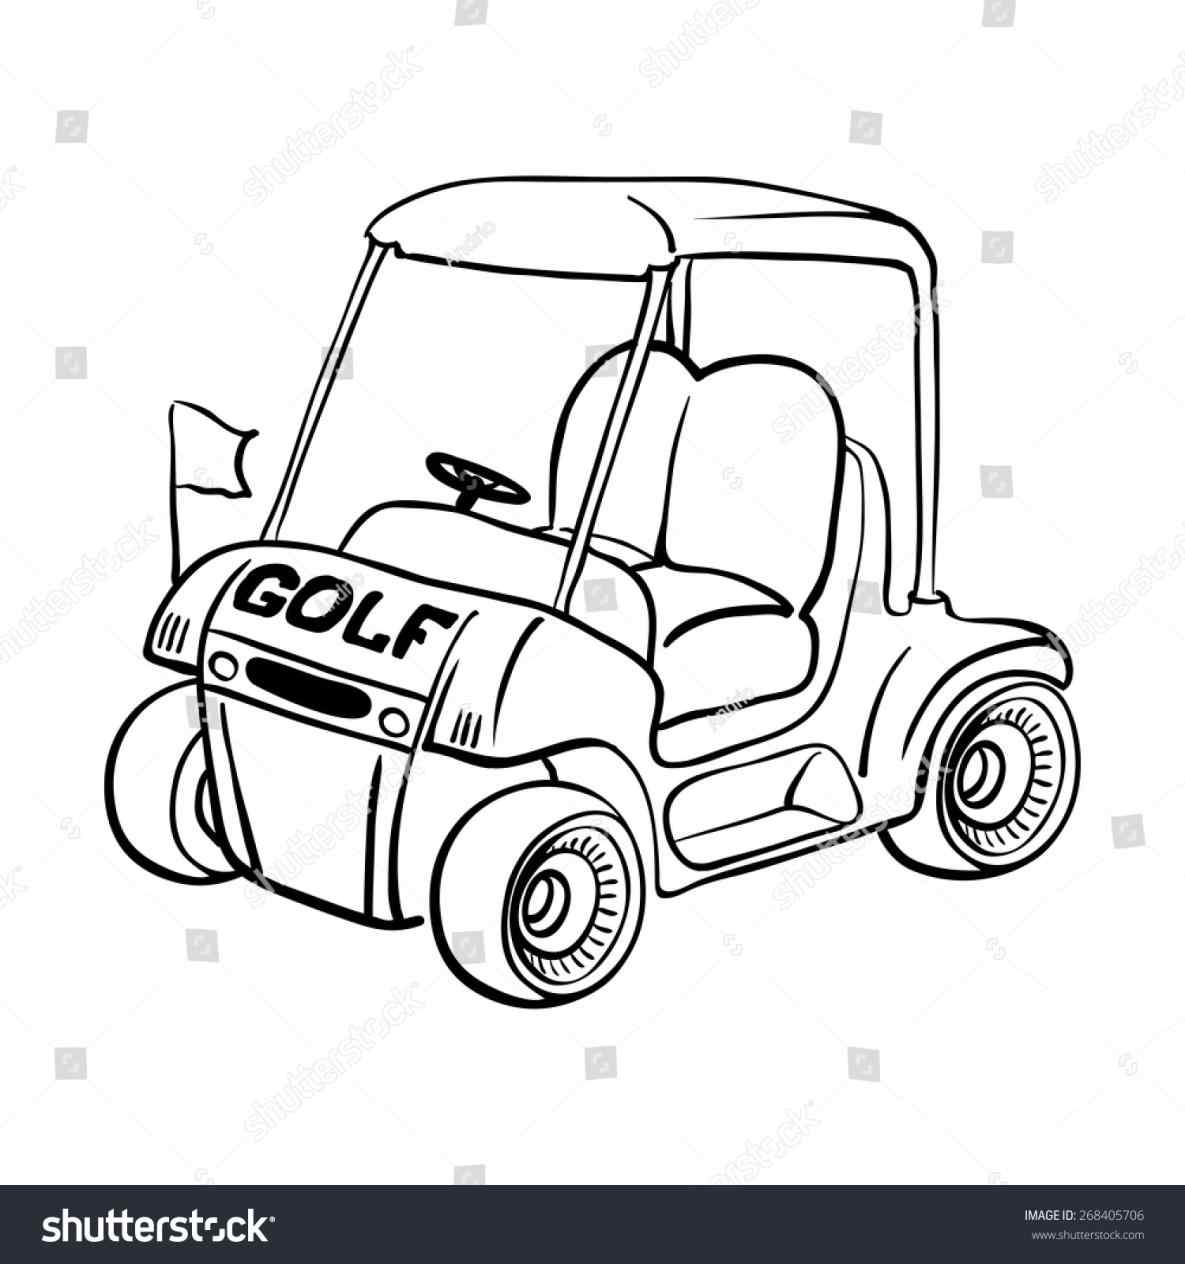 1185x1264 Every Golf Cart Needs A Lift Kit Golfpatentscom Vector Sketch